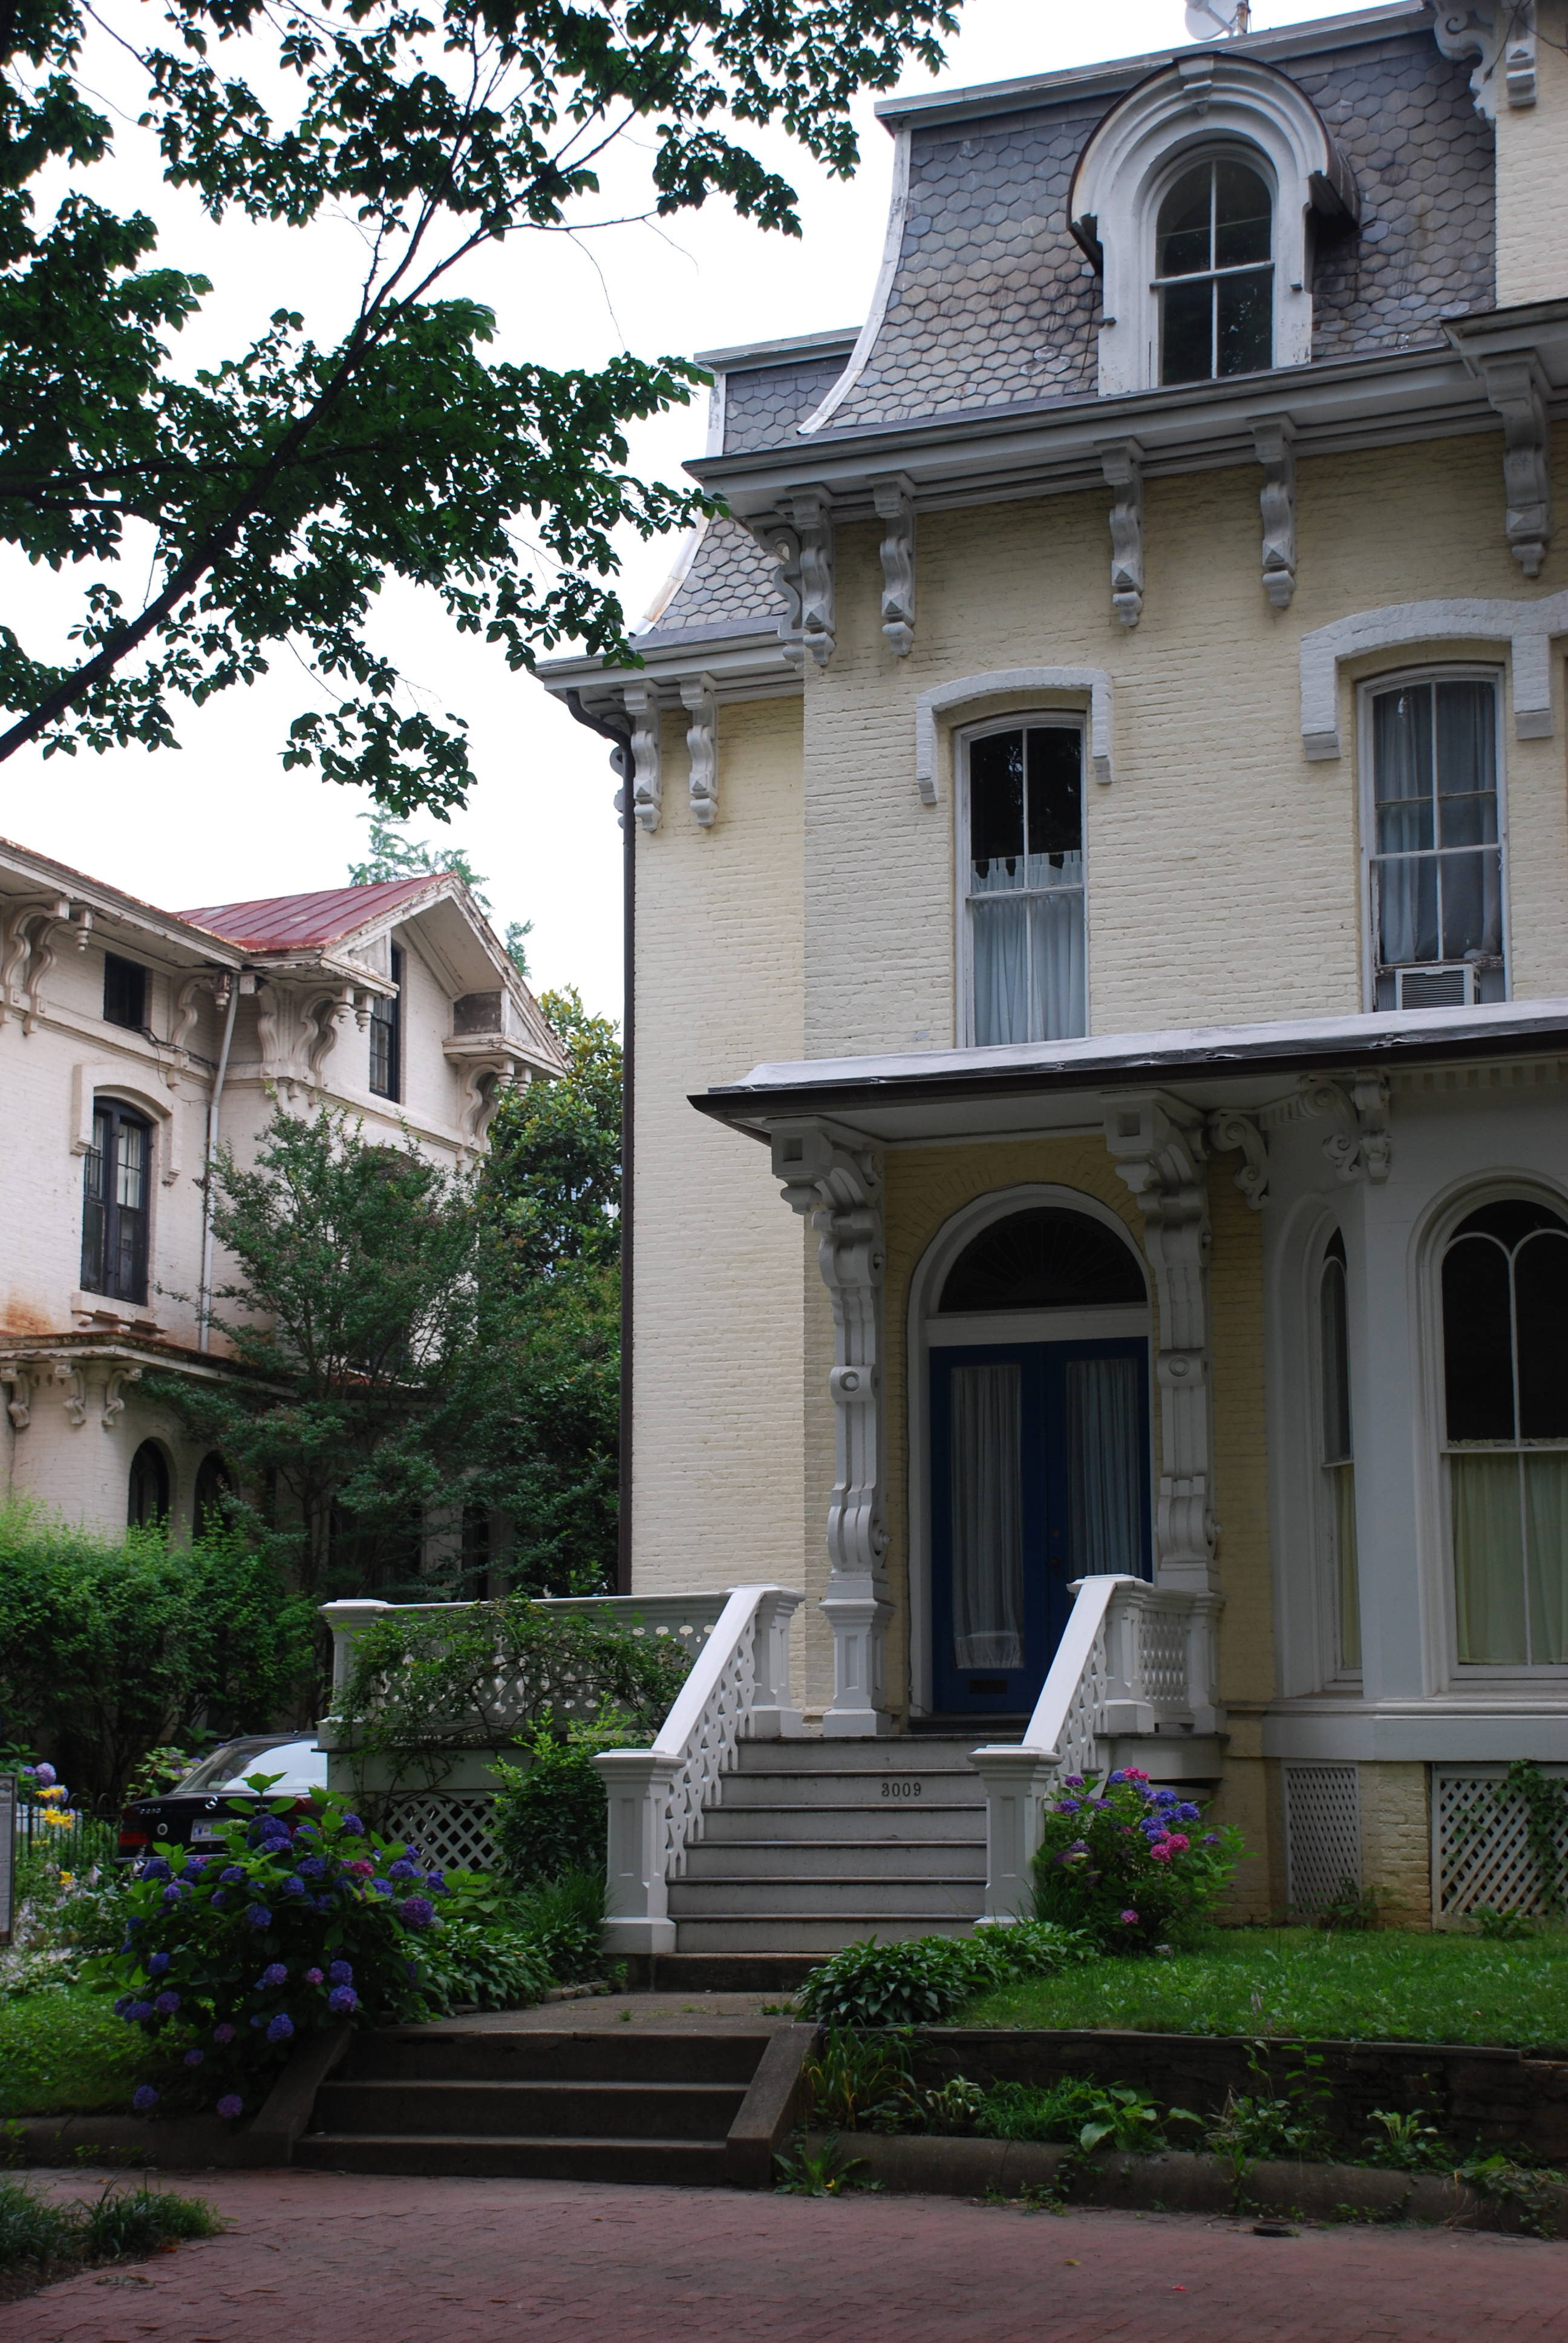 Field guide to georgetown houses the early victorian for Historic second empire house plans